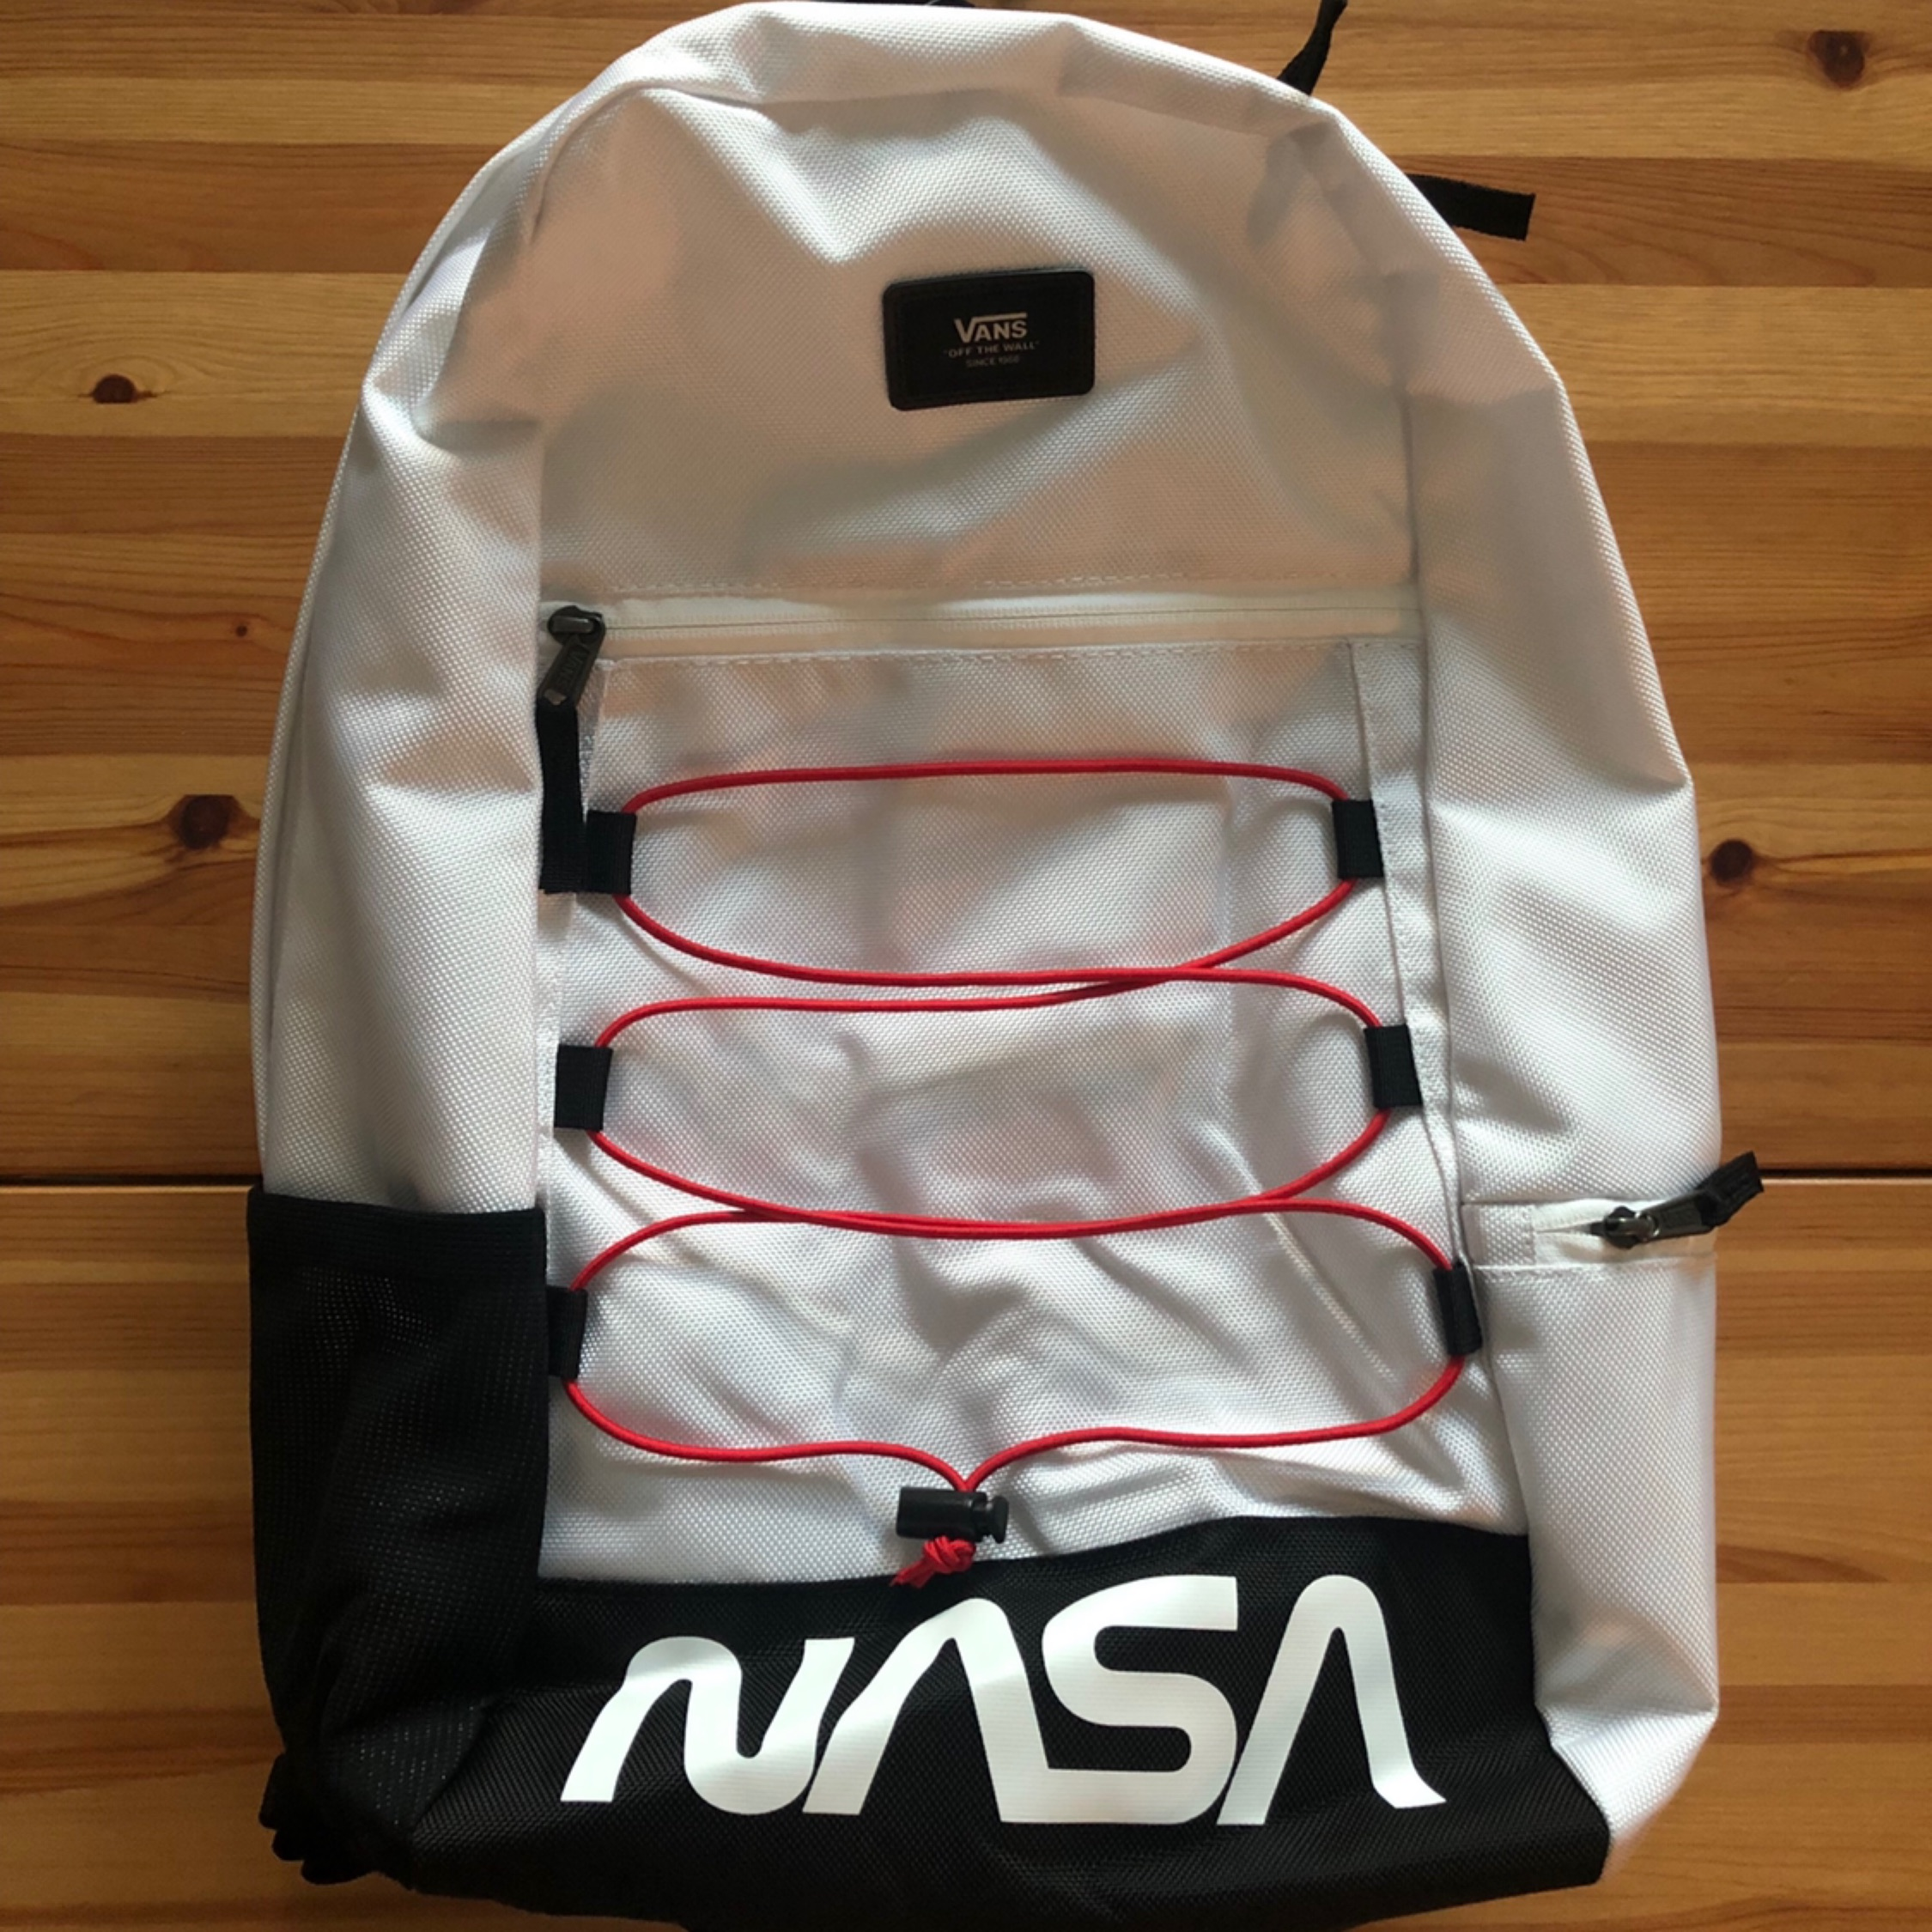 "Vans X Nasa ""Space Voyager"" Snag Backpack Bag"